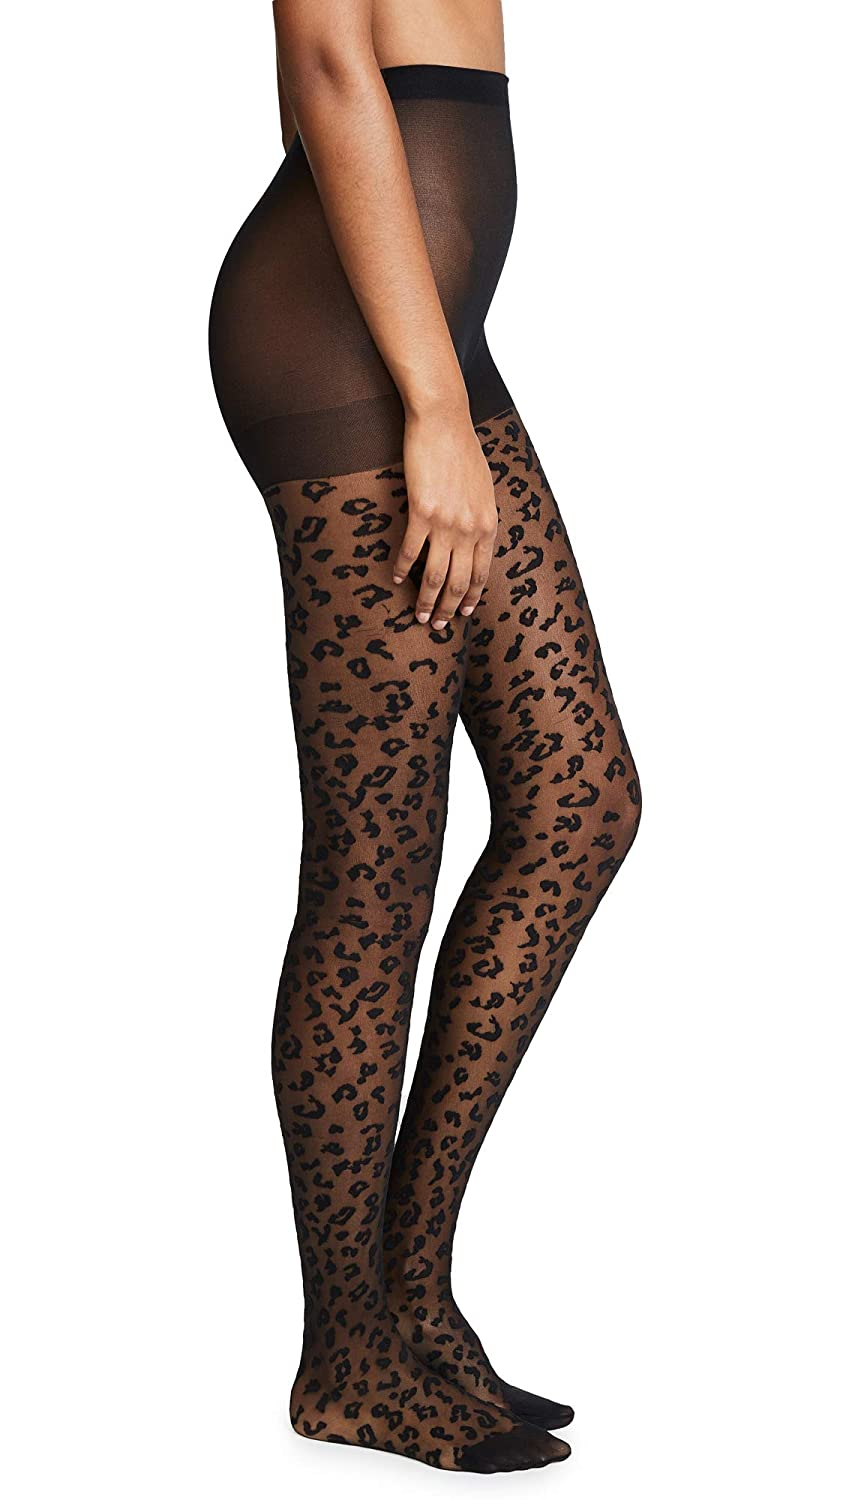 Kate Spade New York Women's Leopard Sheer Tights Planet Sox-Women's